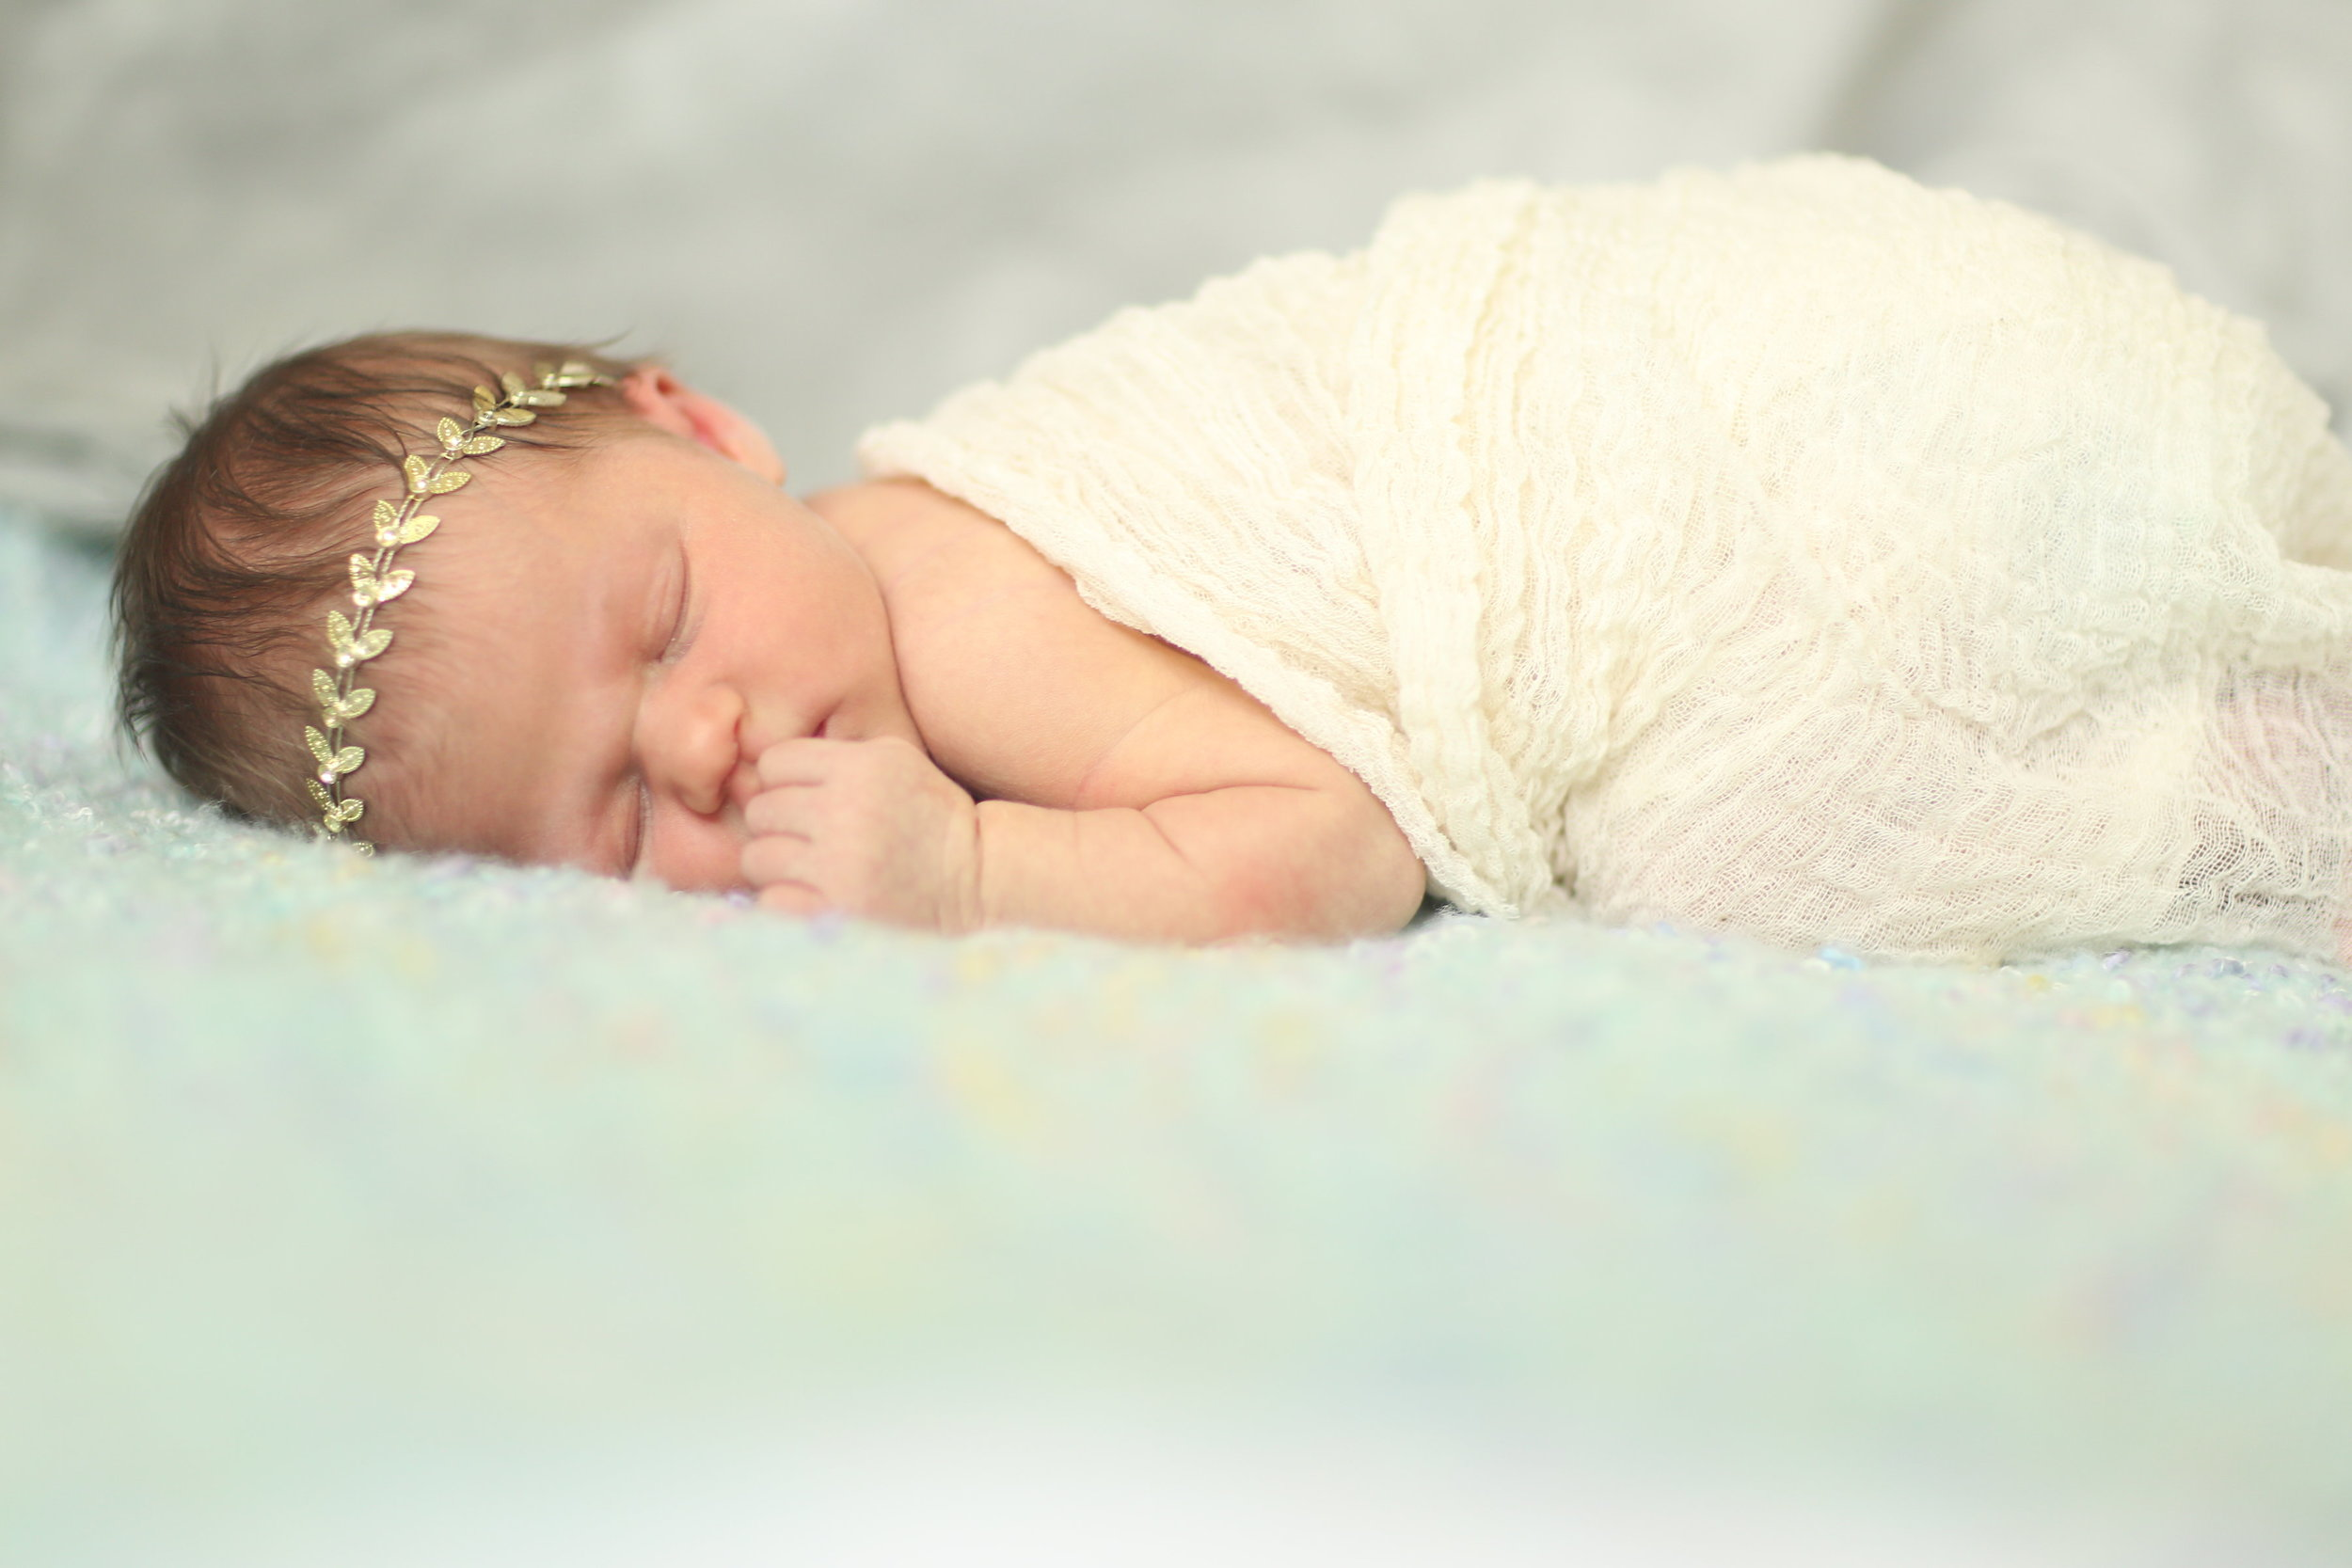 Newborn Baby Girl Photos - Unique Baby Girl Names - Traditional Baby Girl Names - Naming Your Baby